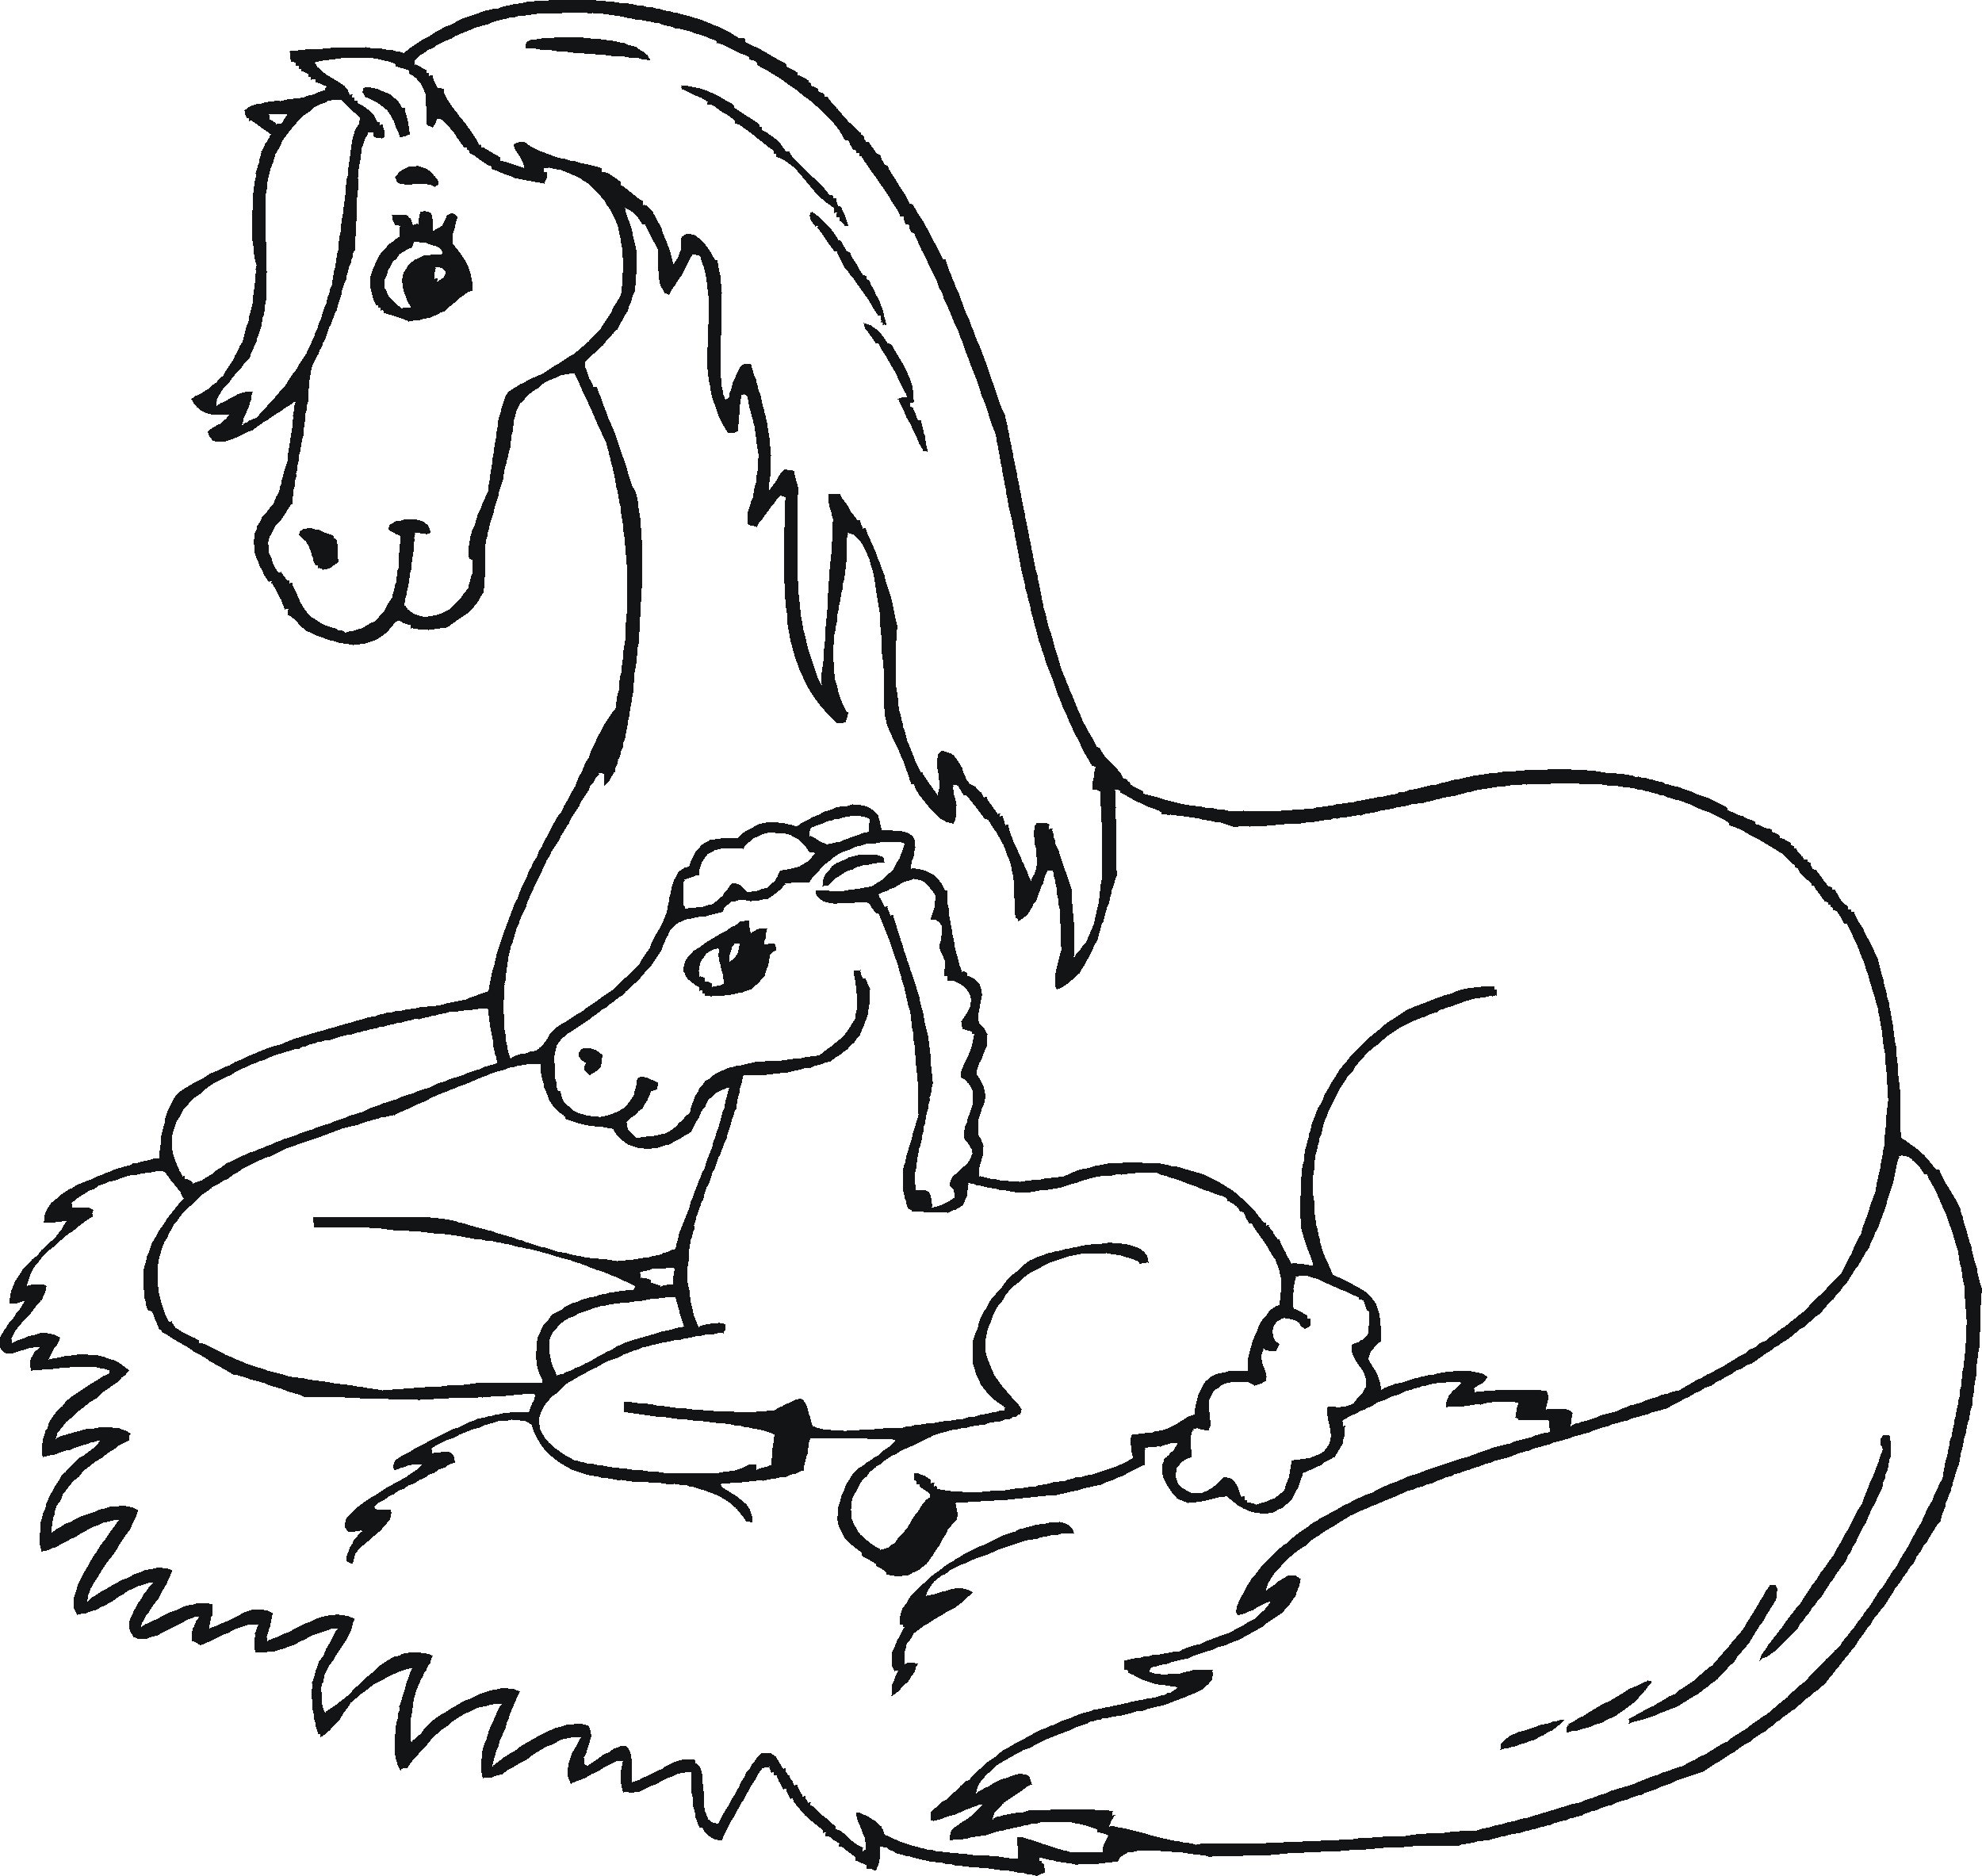 Baby Horses Coloring Pages - Coloring Home